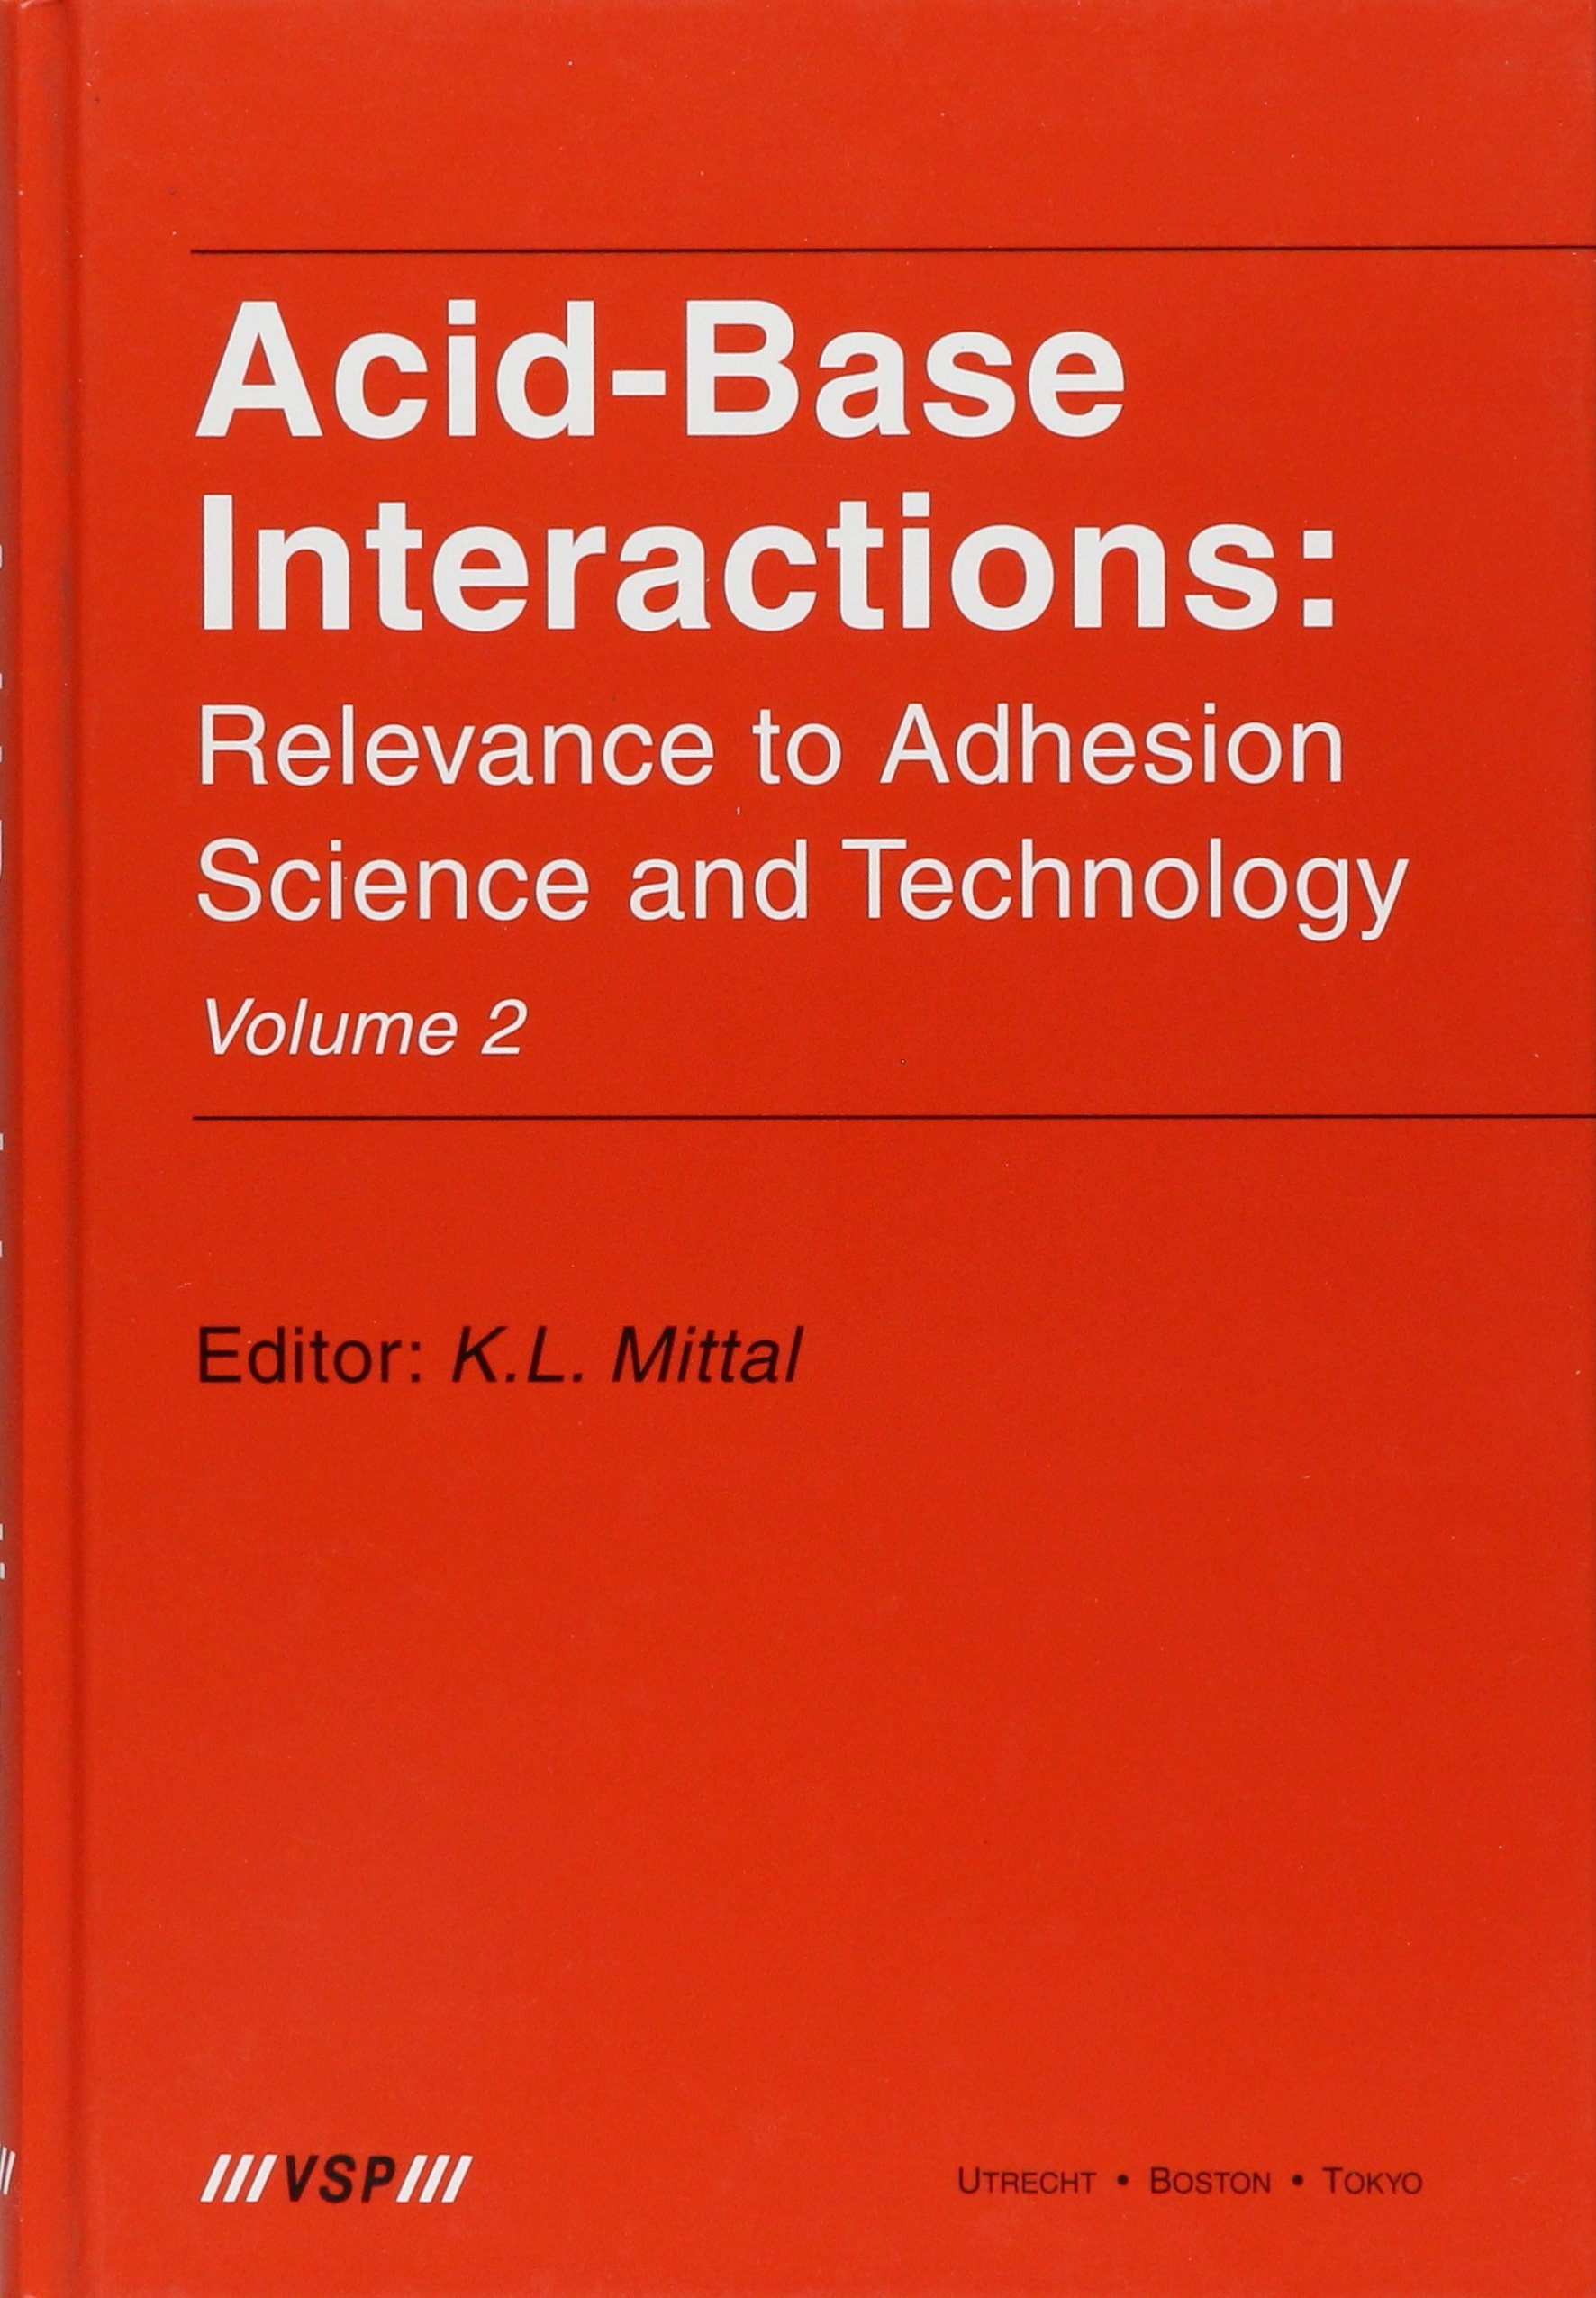 Download Acid-Base Interactions: Relevance to Adhesion Science and Technology, Volume 2 (Vol 2) pdf epub